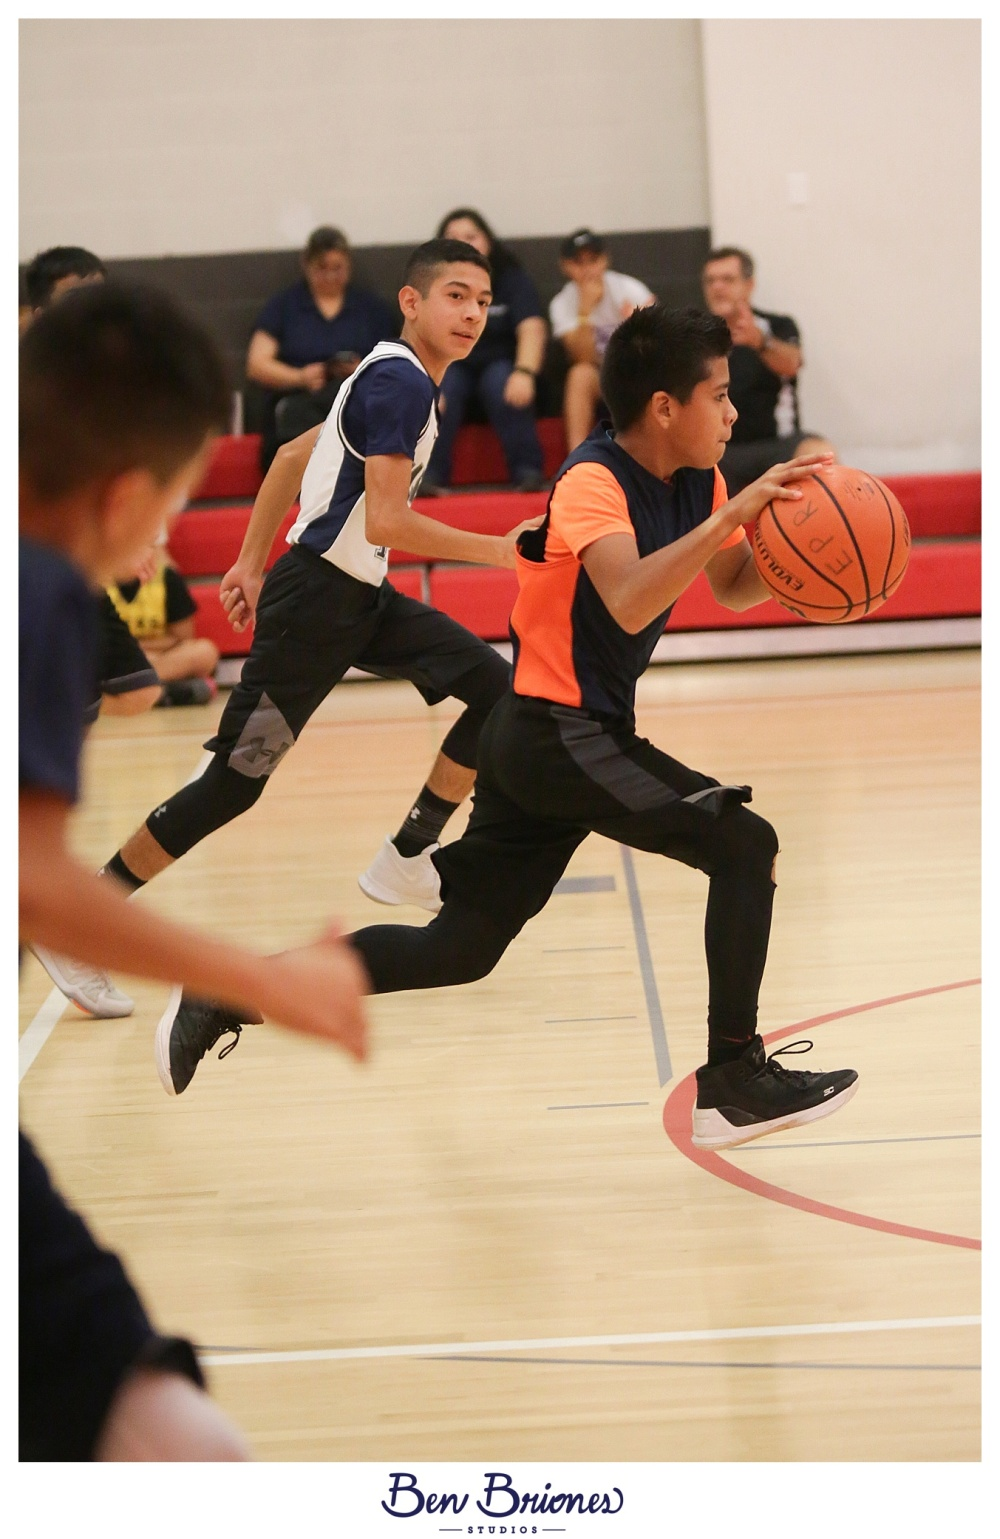 2 - Basketball (All Ages) - Games of Texas - Edinburg Sports & Wellness Center-2159_BLOG